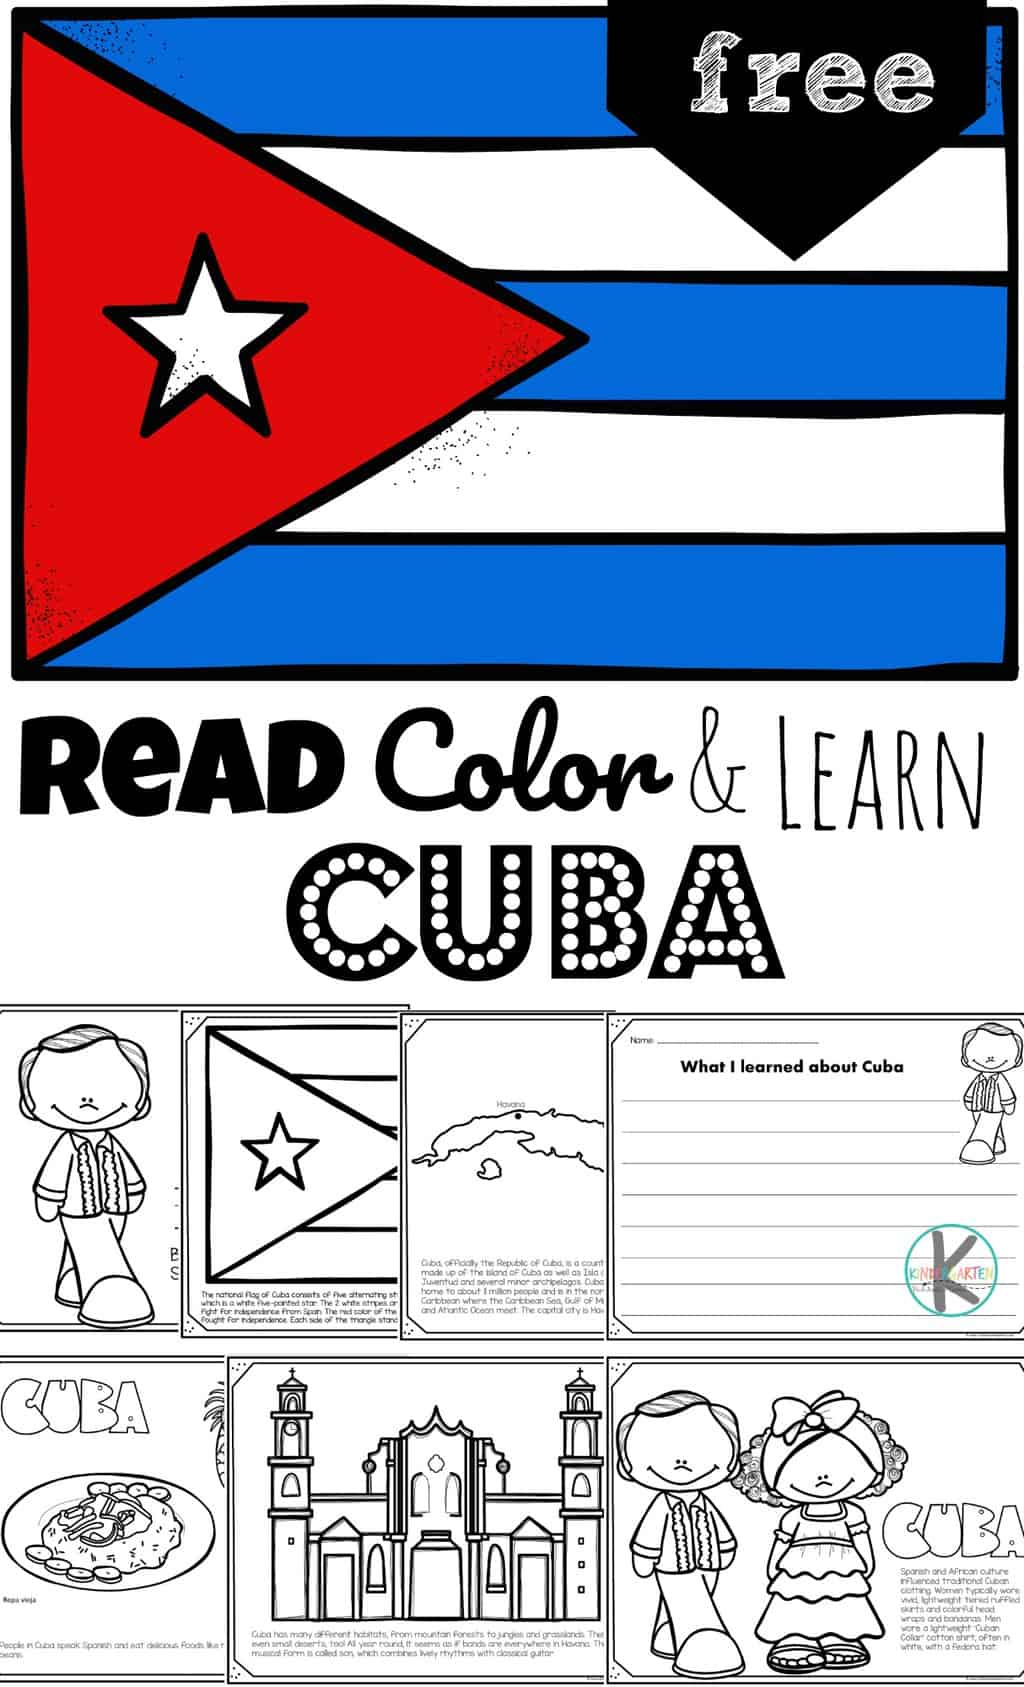 Free Read Color And Learn About Cuba